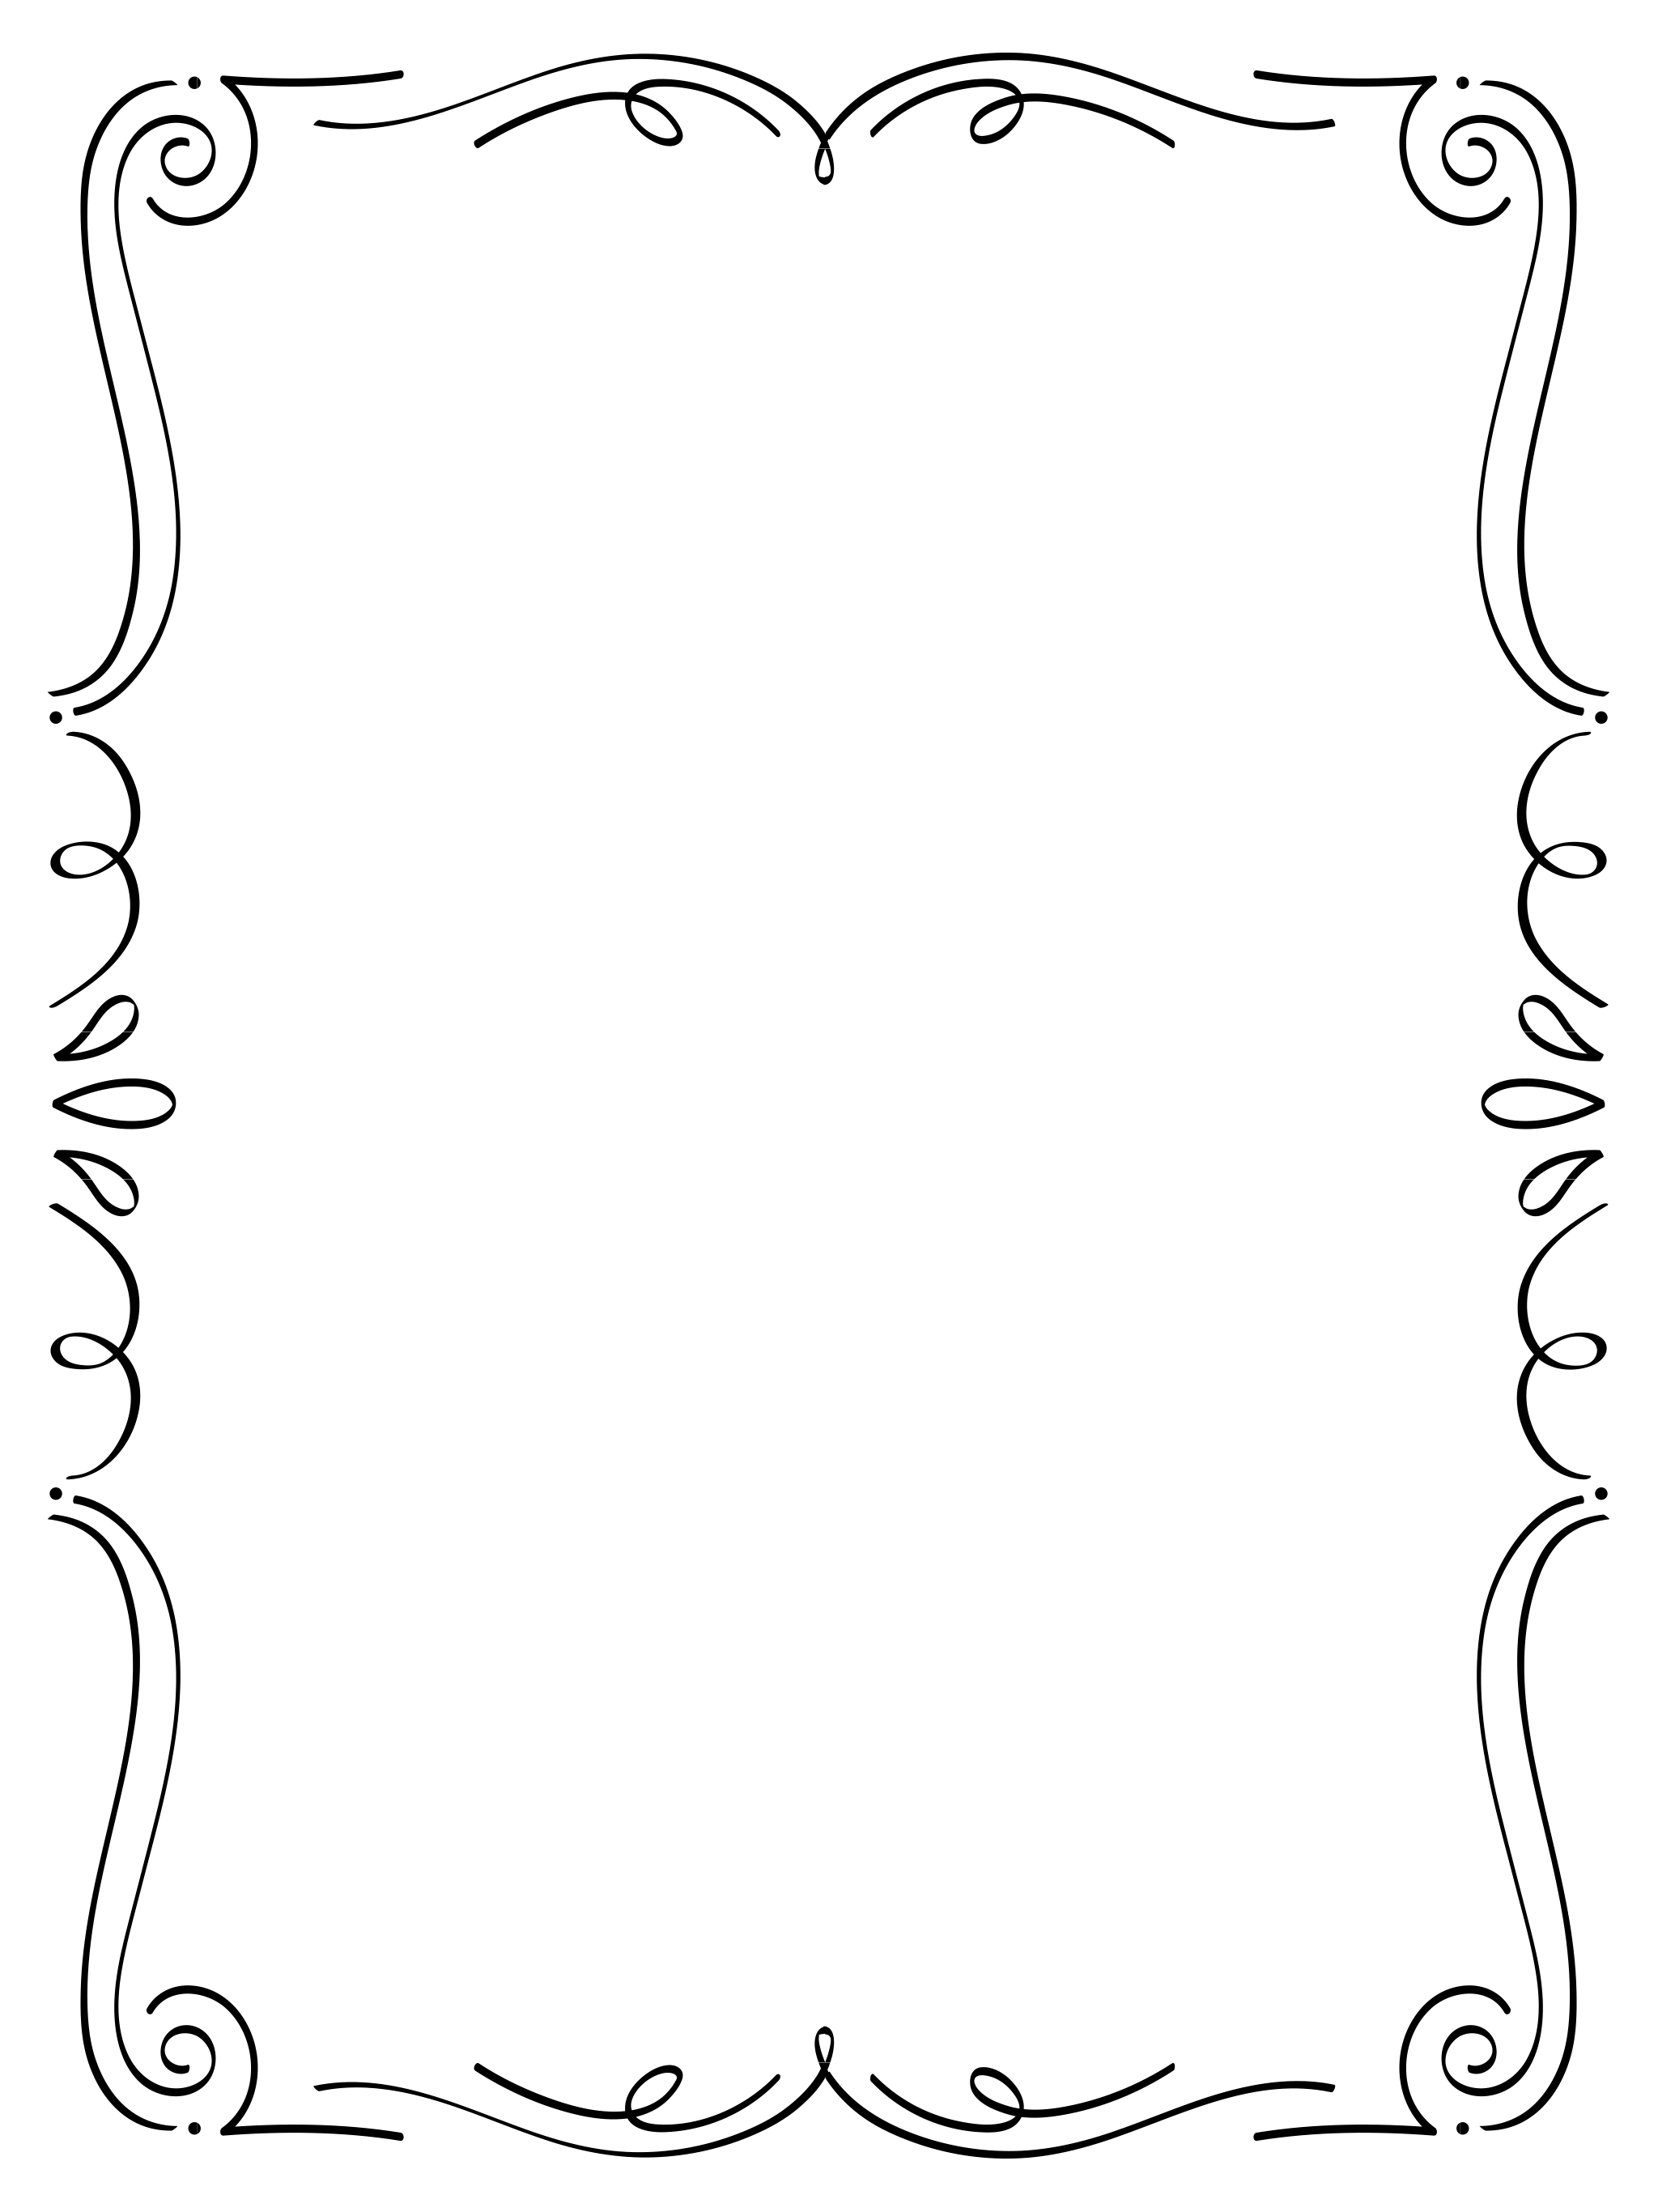 Ipad Vertical_2048x2732_Swashes_Black.png